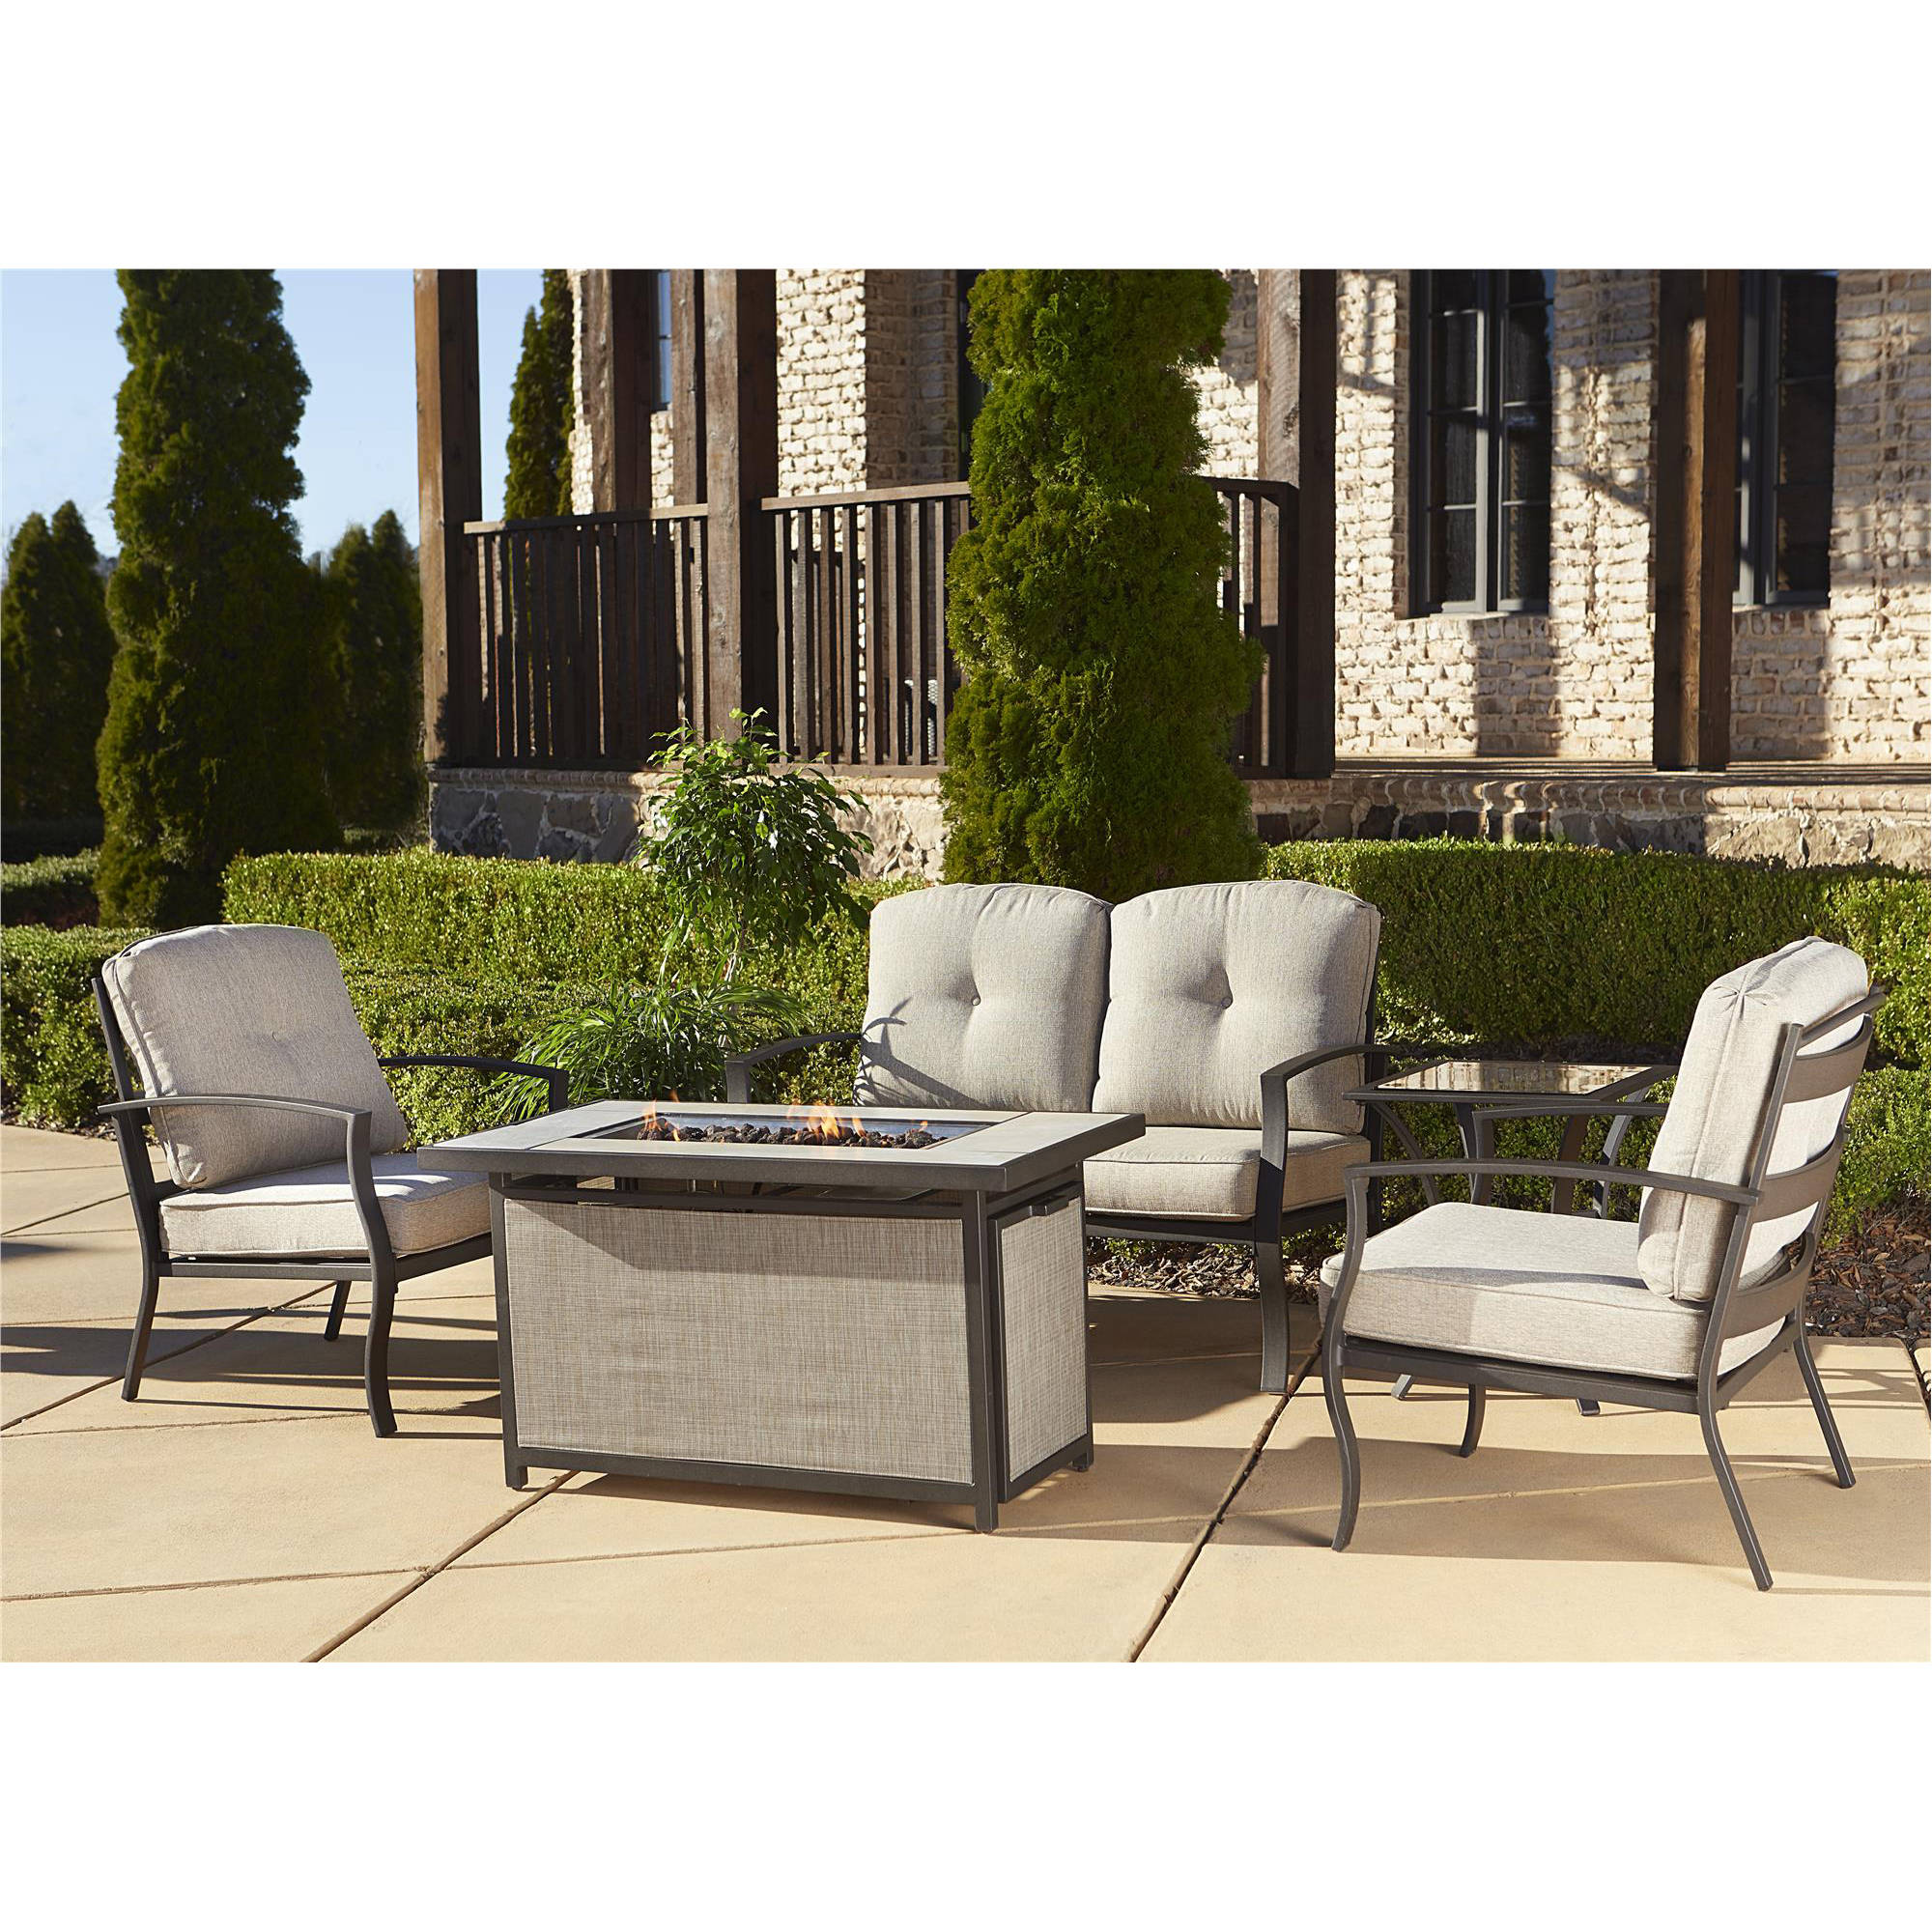 Cosco Outdoor 5-Piece Serene Ridge Aluminum Patio Furniture Conversation Set with Cushions and Aluminum Gas Fire Pit Table, Dark Brown